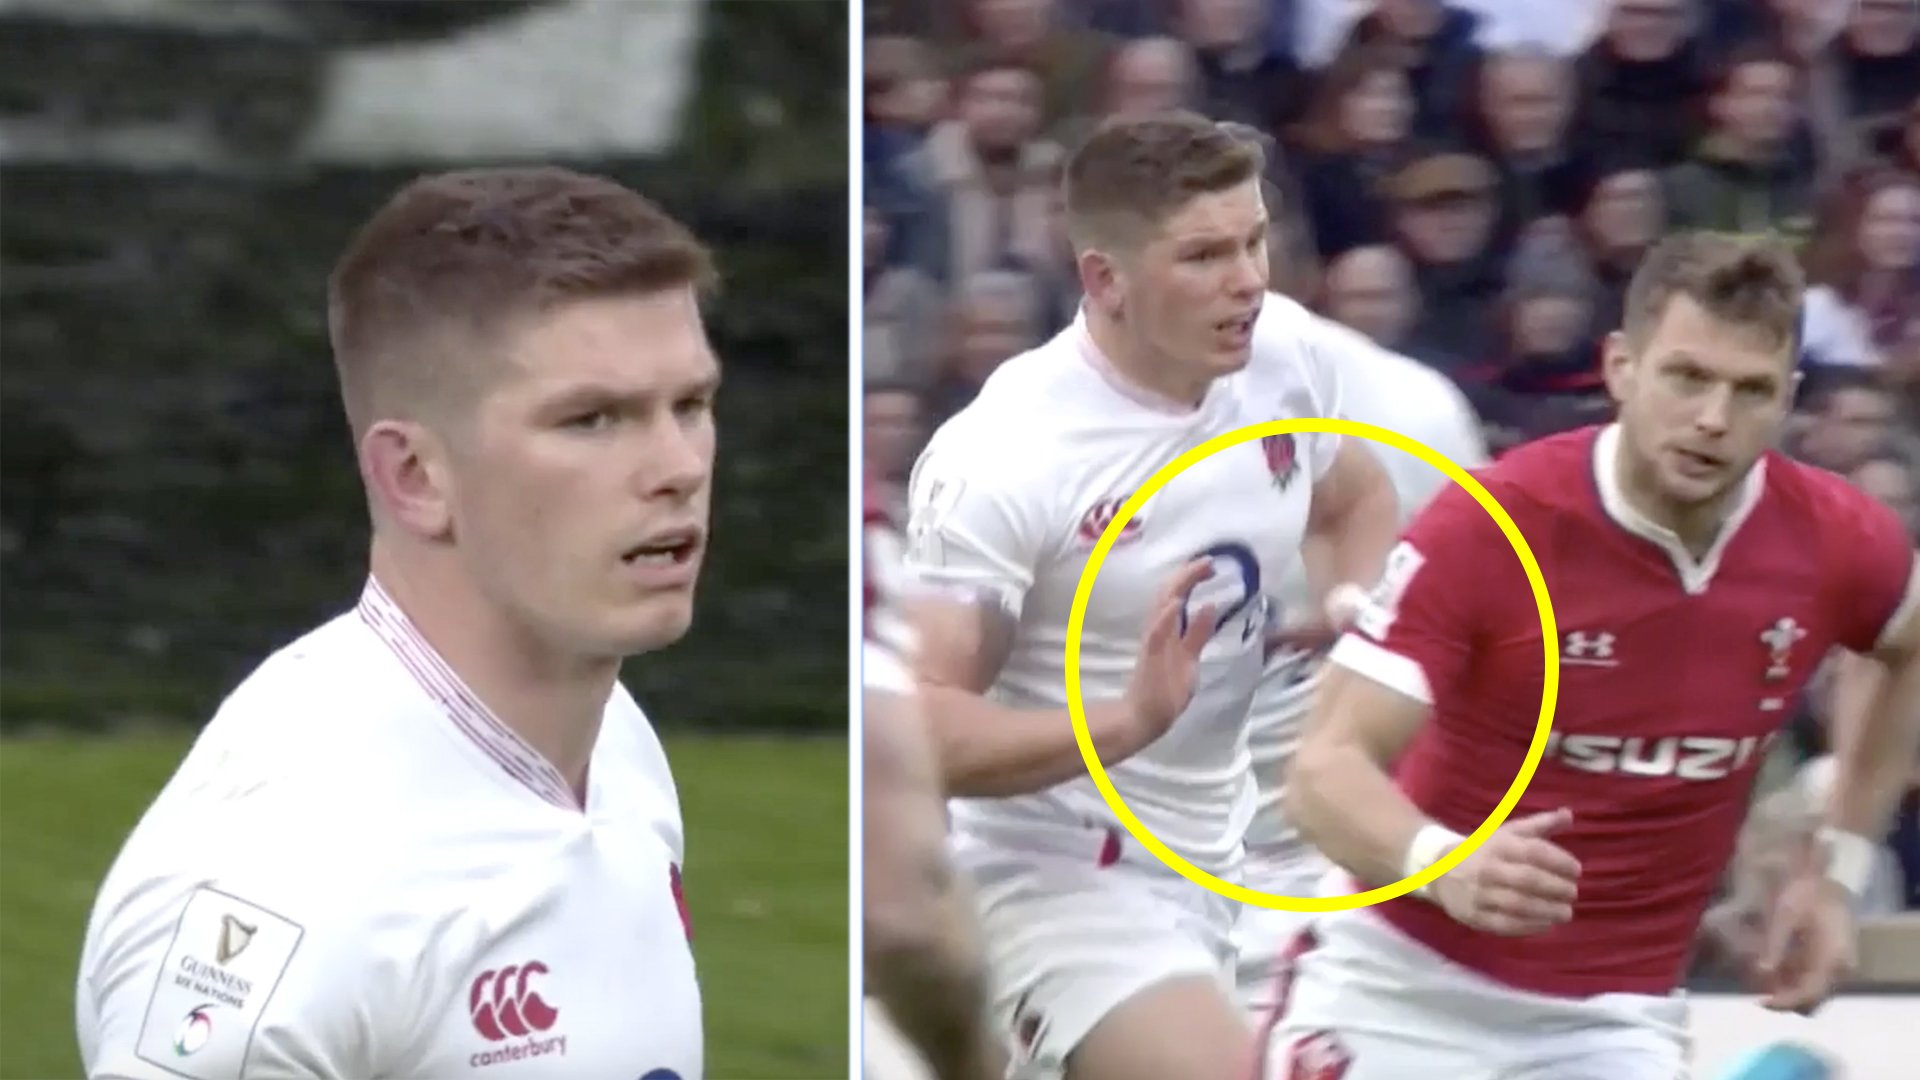 Rugby fans outraged as it is now clear ref missed Owen Farrell assault on Dan Biggar in Six Nations